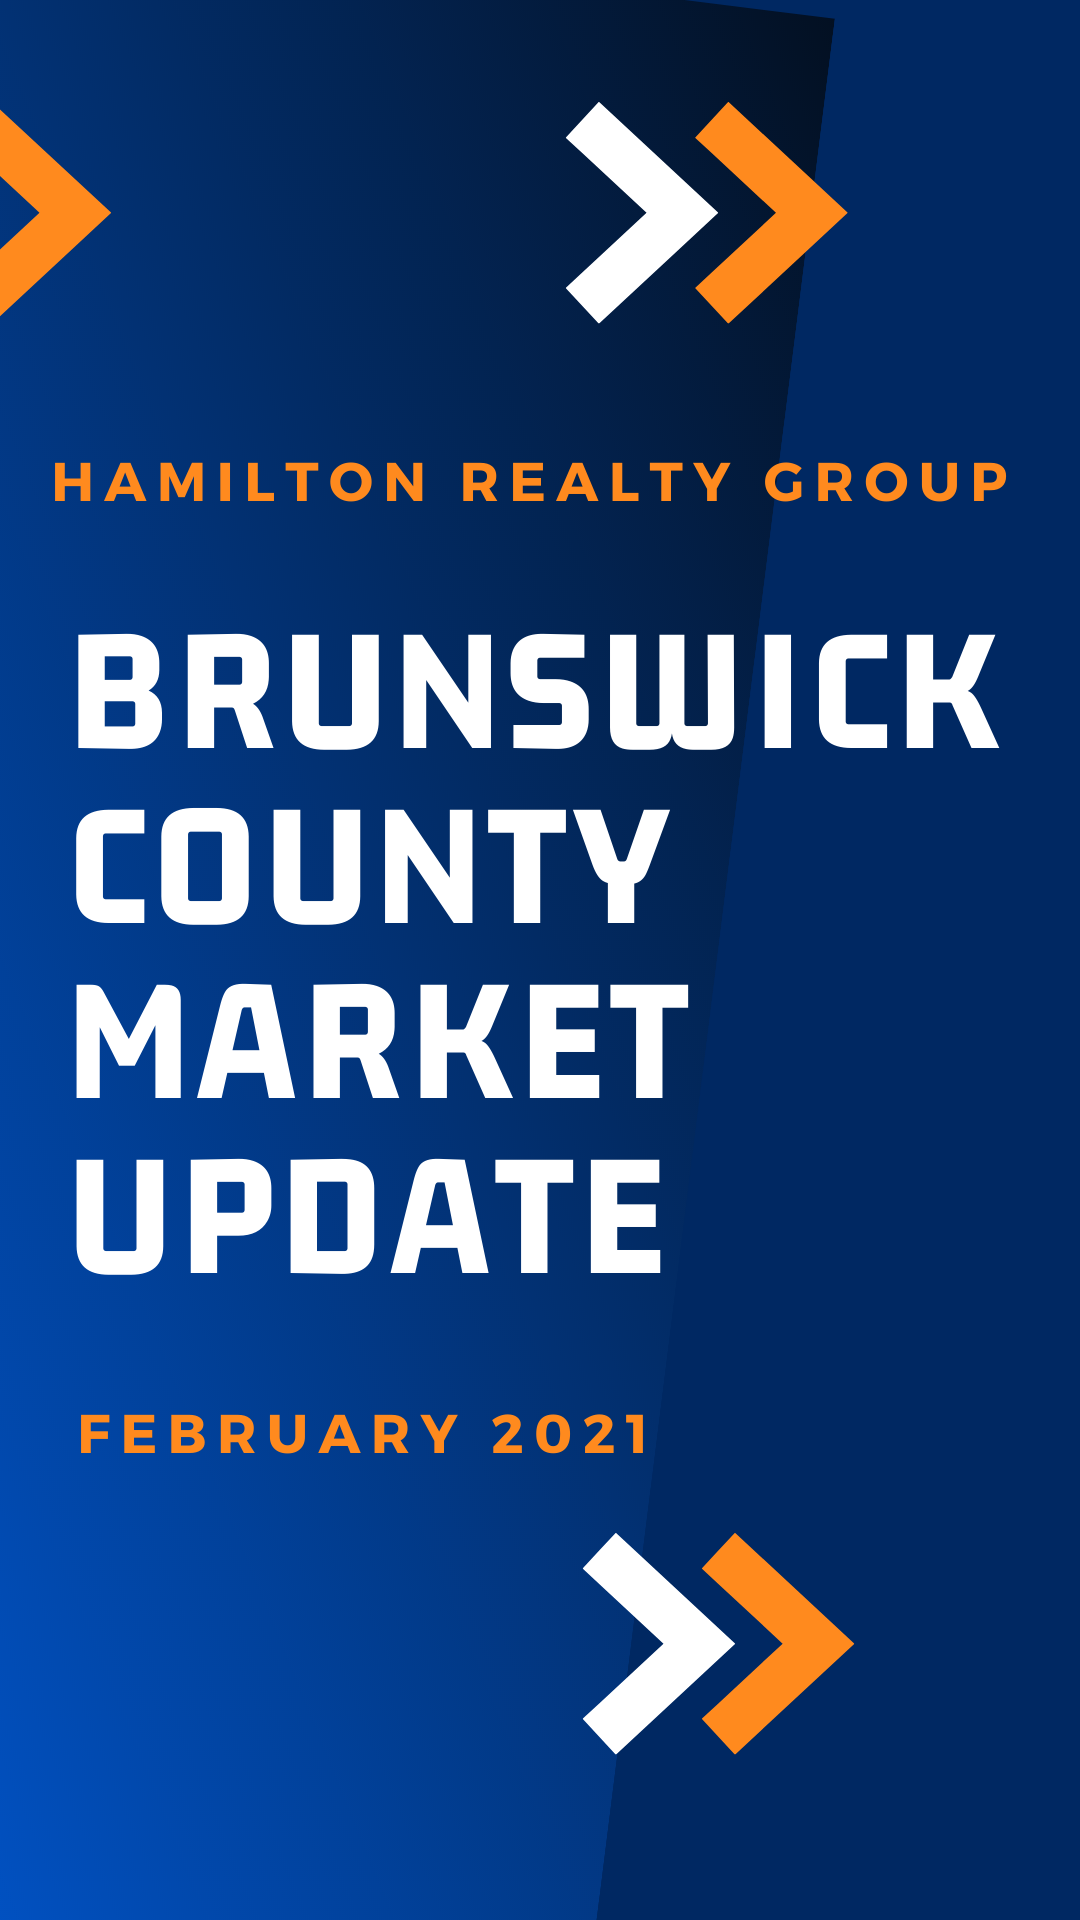 FEBRUARY 2021: Brunswick County Update